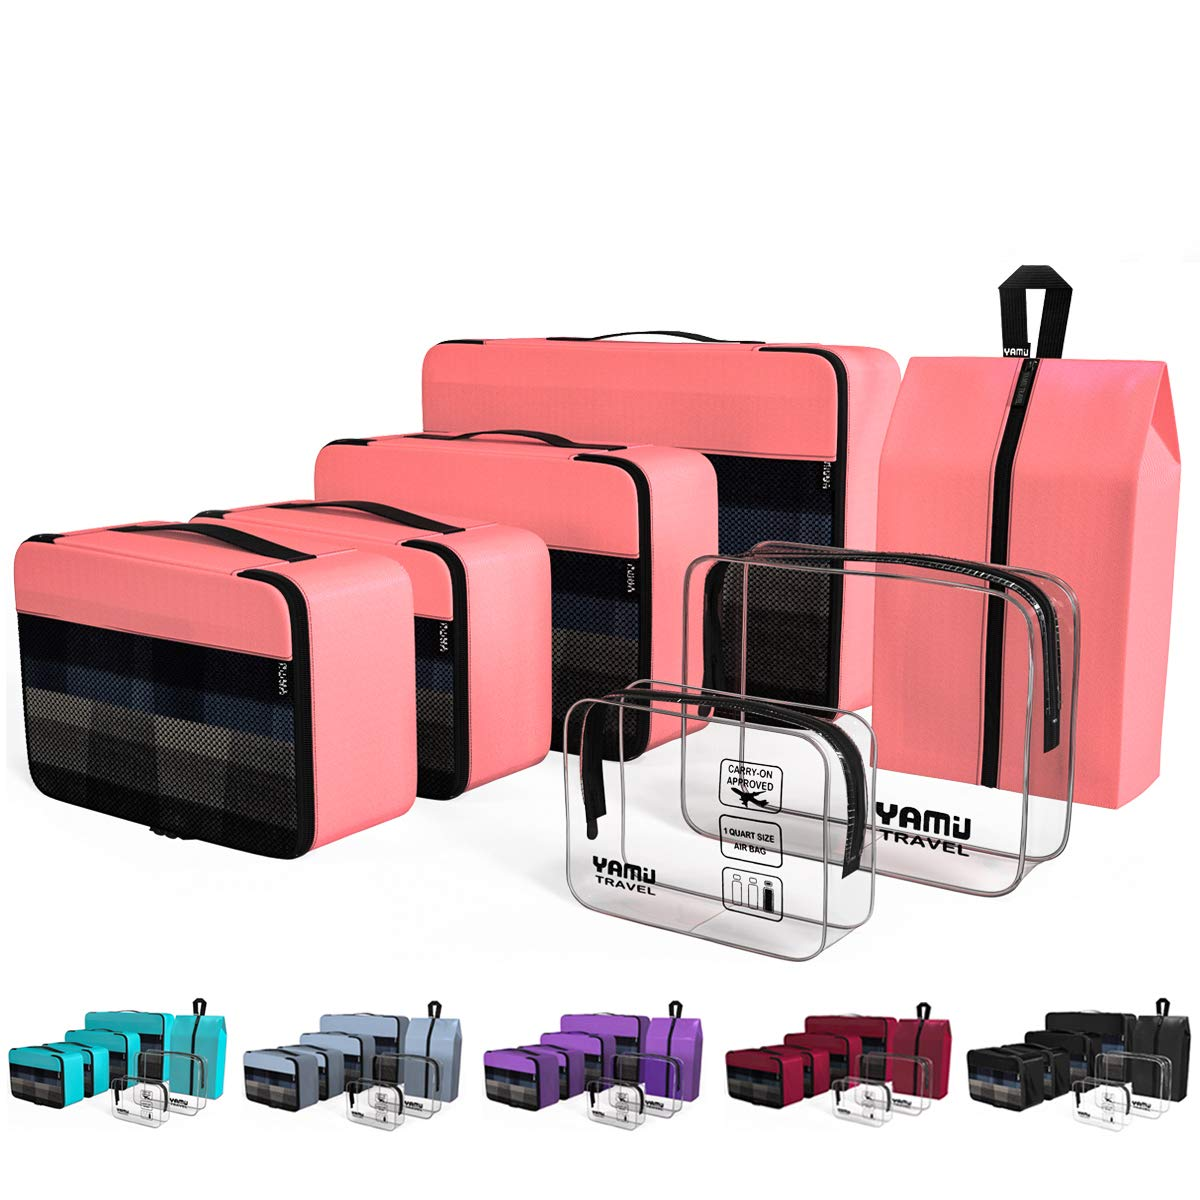 YAMIU Packing Cubes 7-Pcs Travel Organizer Accessories with Shoe Bag and 2 Toiletry Bags(Pink)